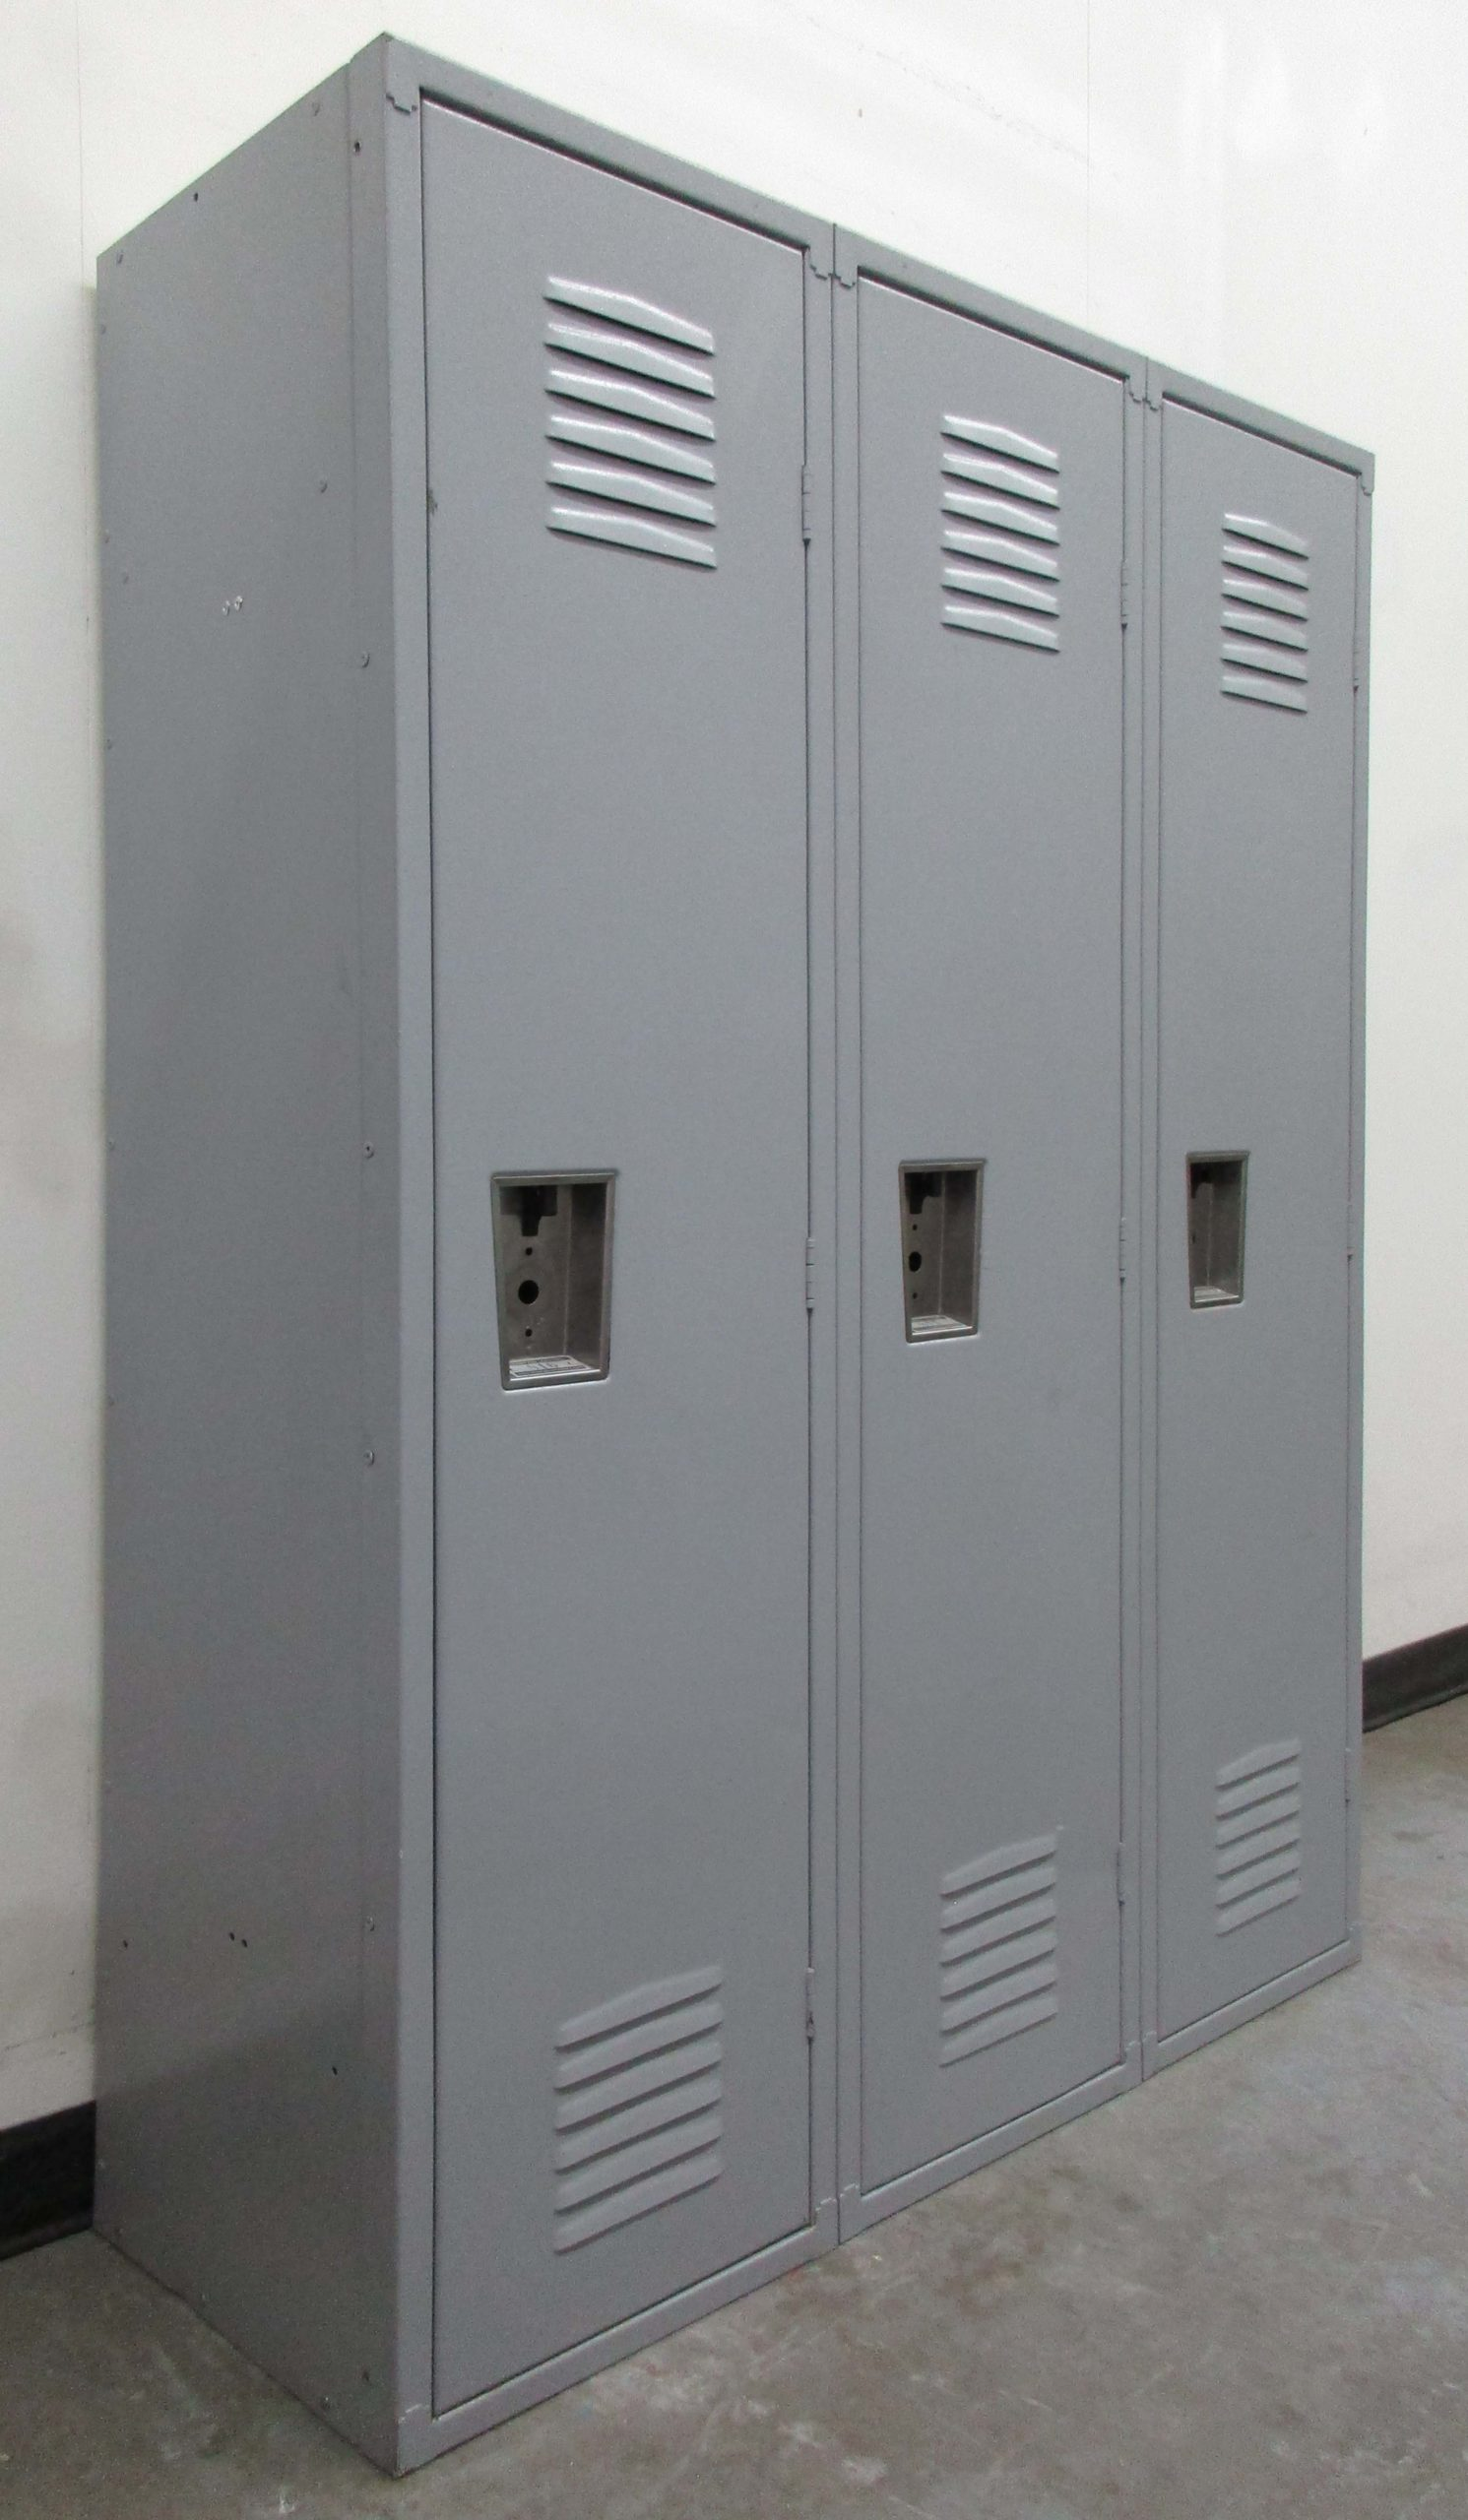 Locker replacement doors and >Locker latch replacements   Fayco are suppliers of a wide range of replacement parts for metal lockers